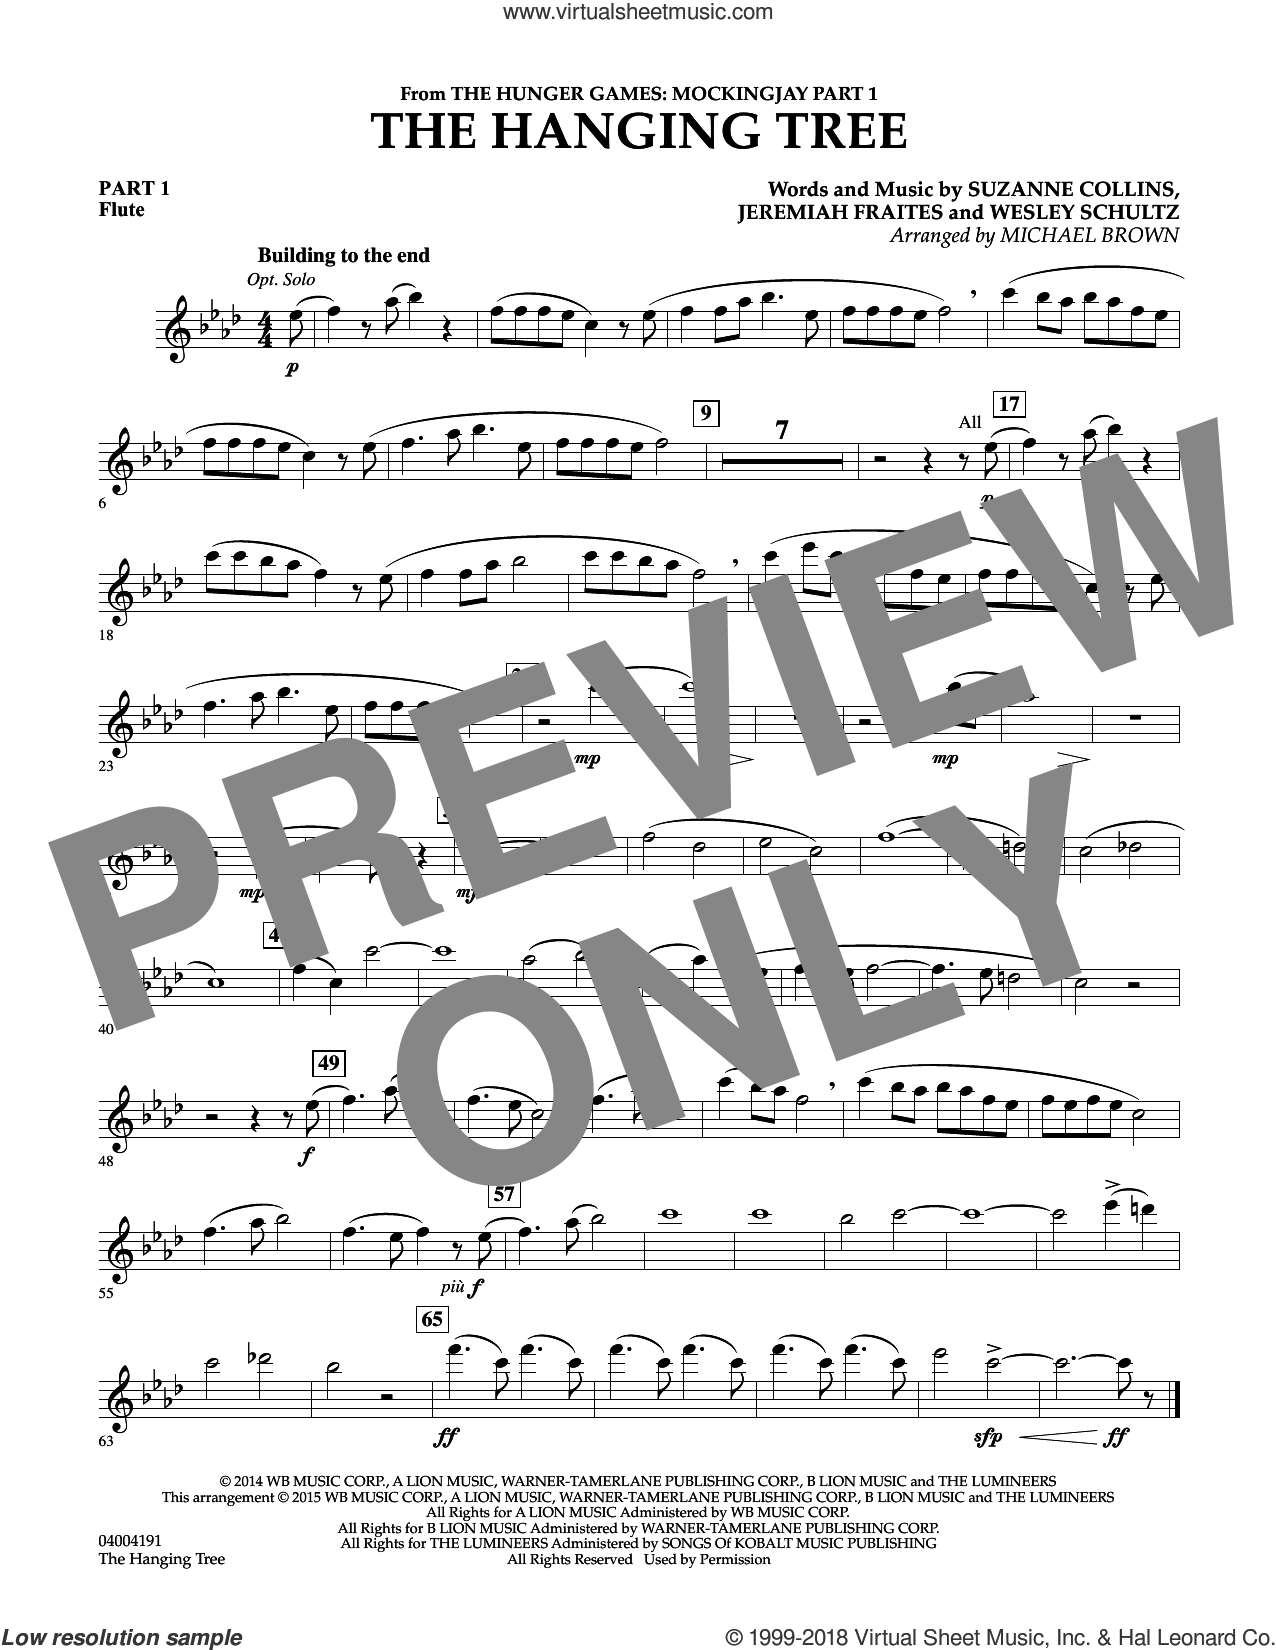 The Hanging Tree (from The Hunger Games: Mockingjay Part 1) sheet music for concert band (pt.1 - flute) by Michael Brown, James Newton Howard, Jeremiah Fraites, Suzanne Collins and Wesley Schultz, intermediate skill level